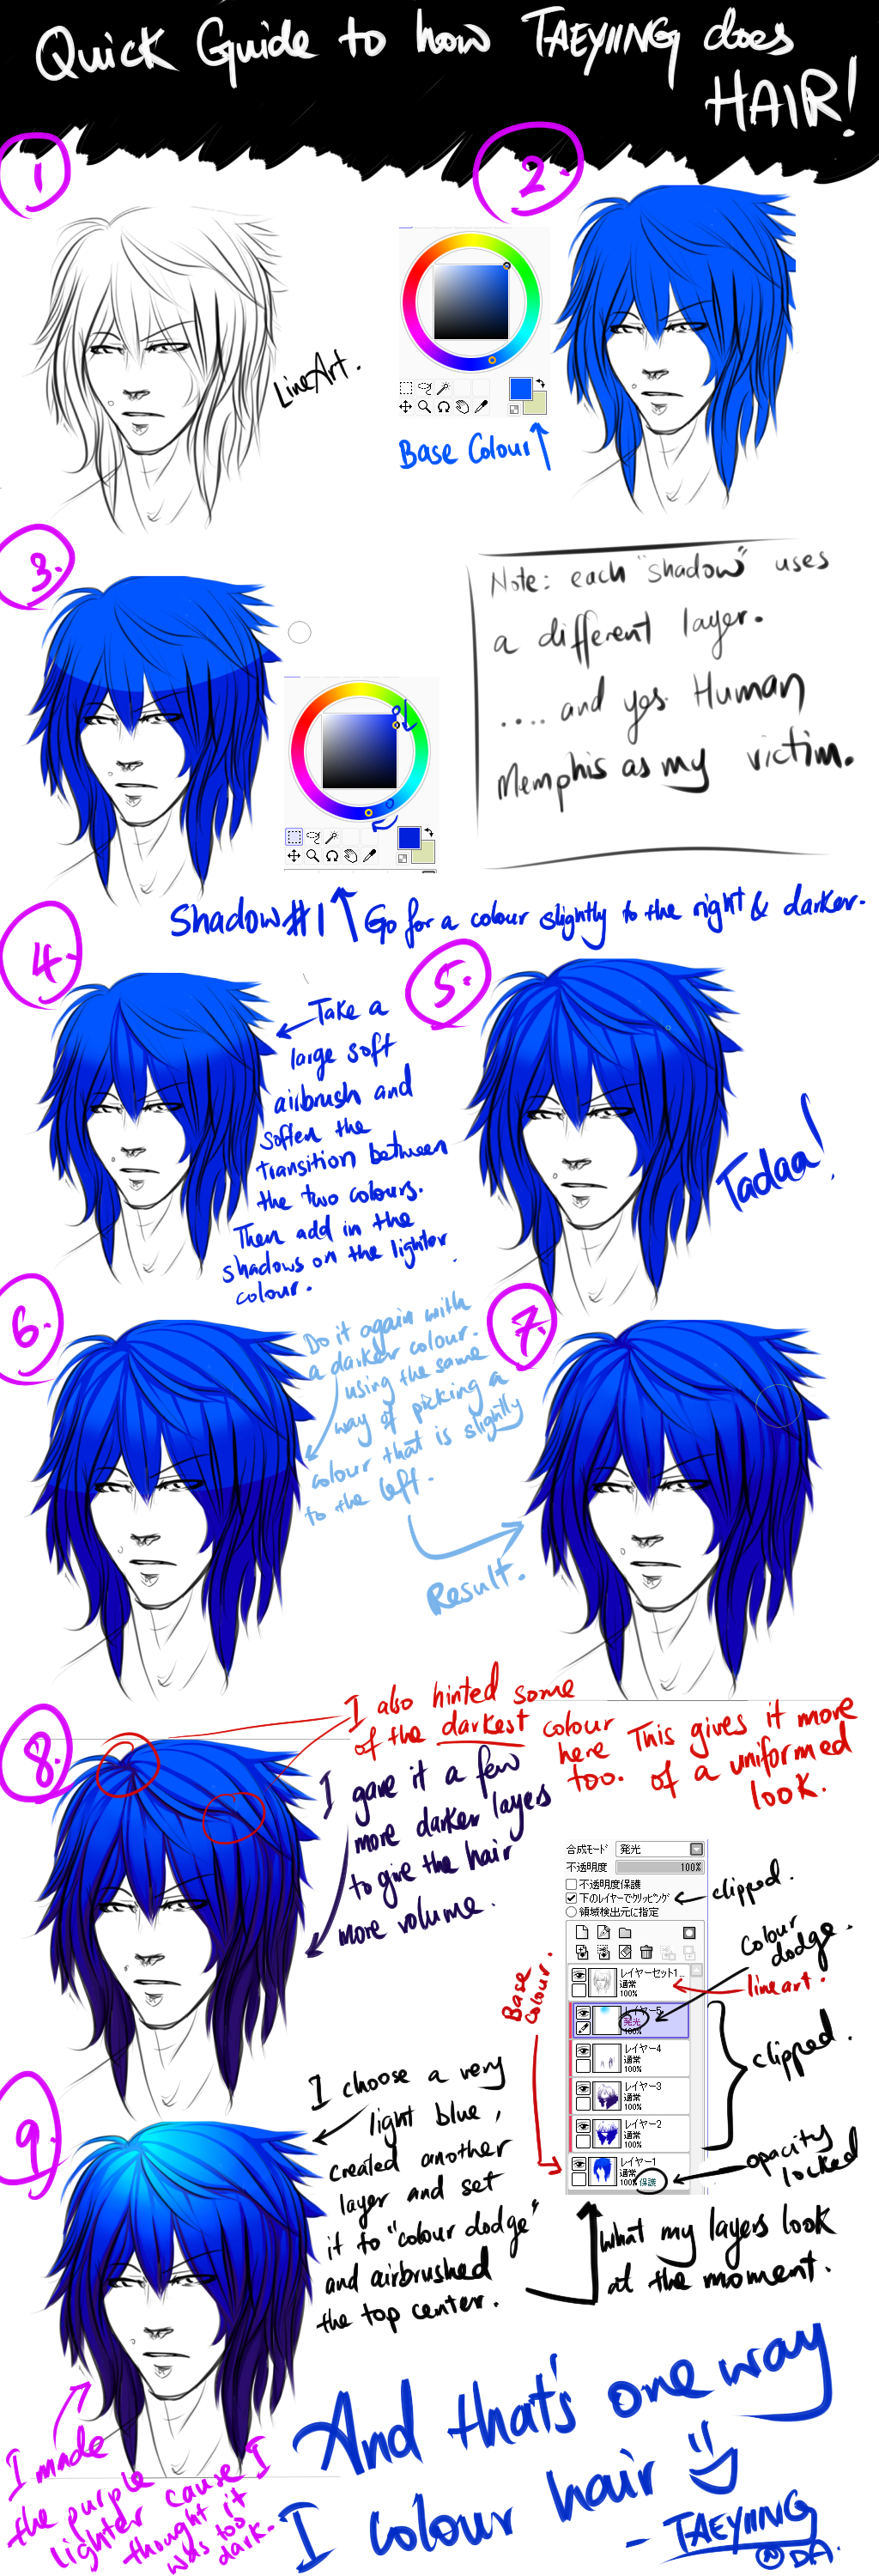 Quick Guide: Coloring Hair by TaeYiiNG